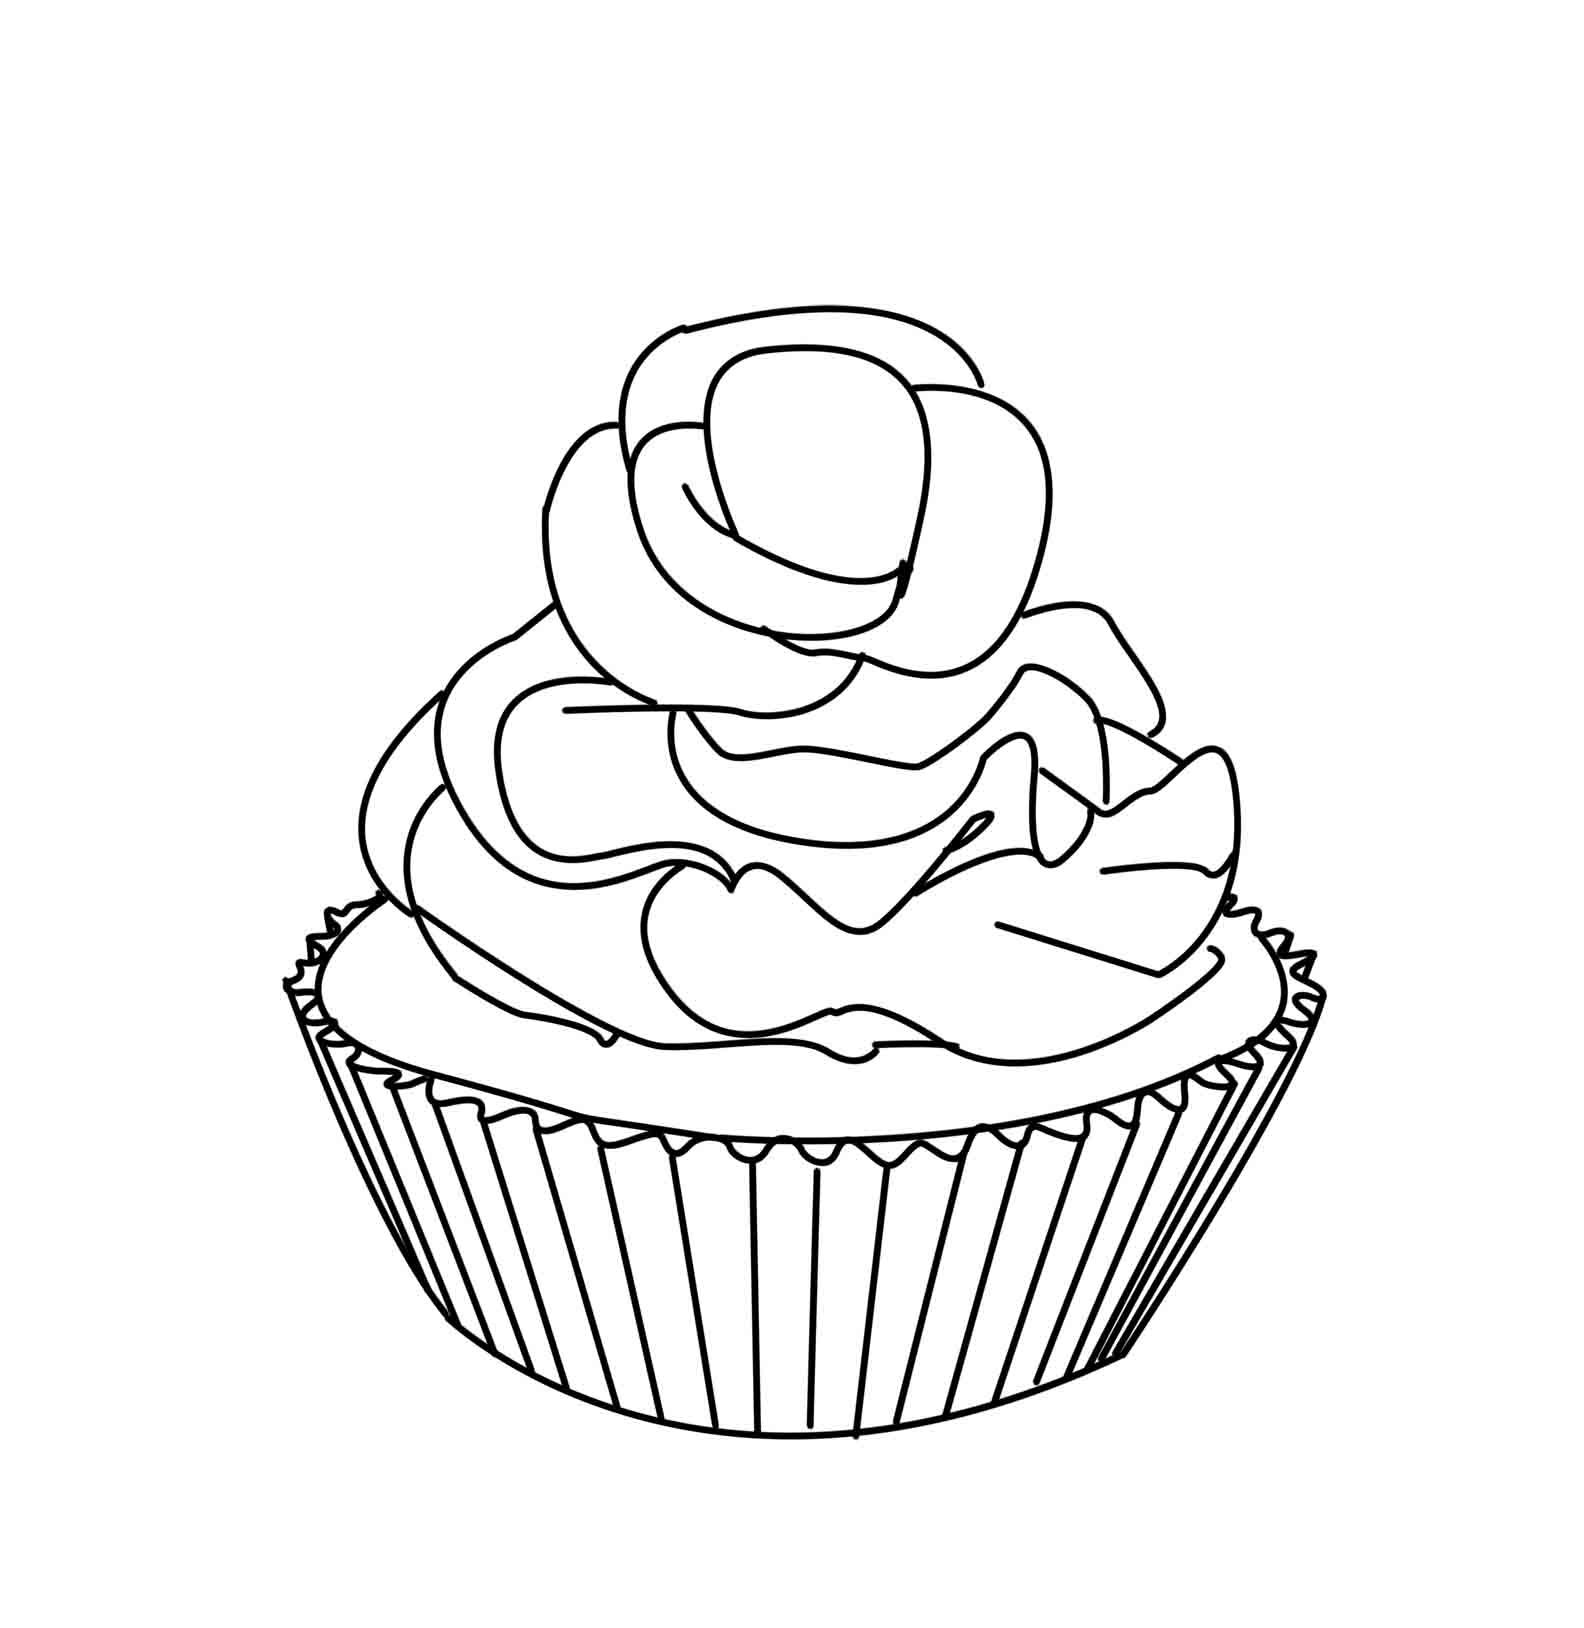 muffin pictures to color muffins clipart outline muffins outline transparent free to pictures muffin color